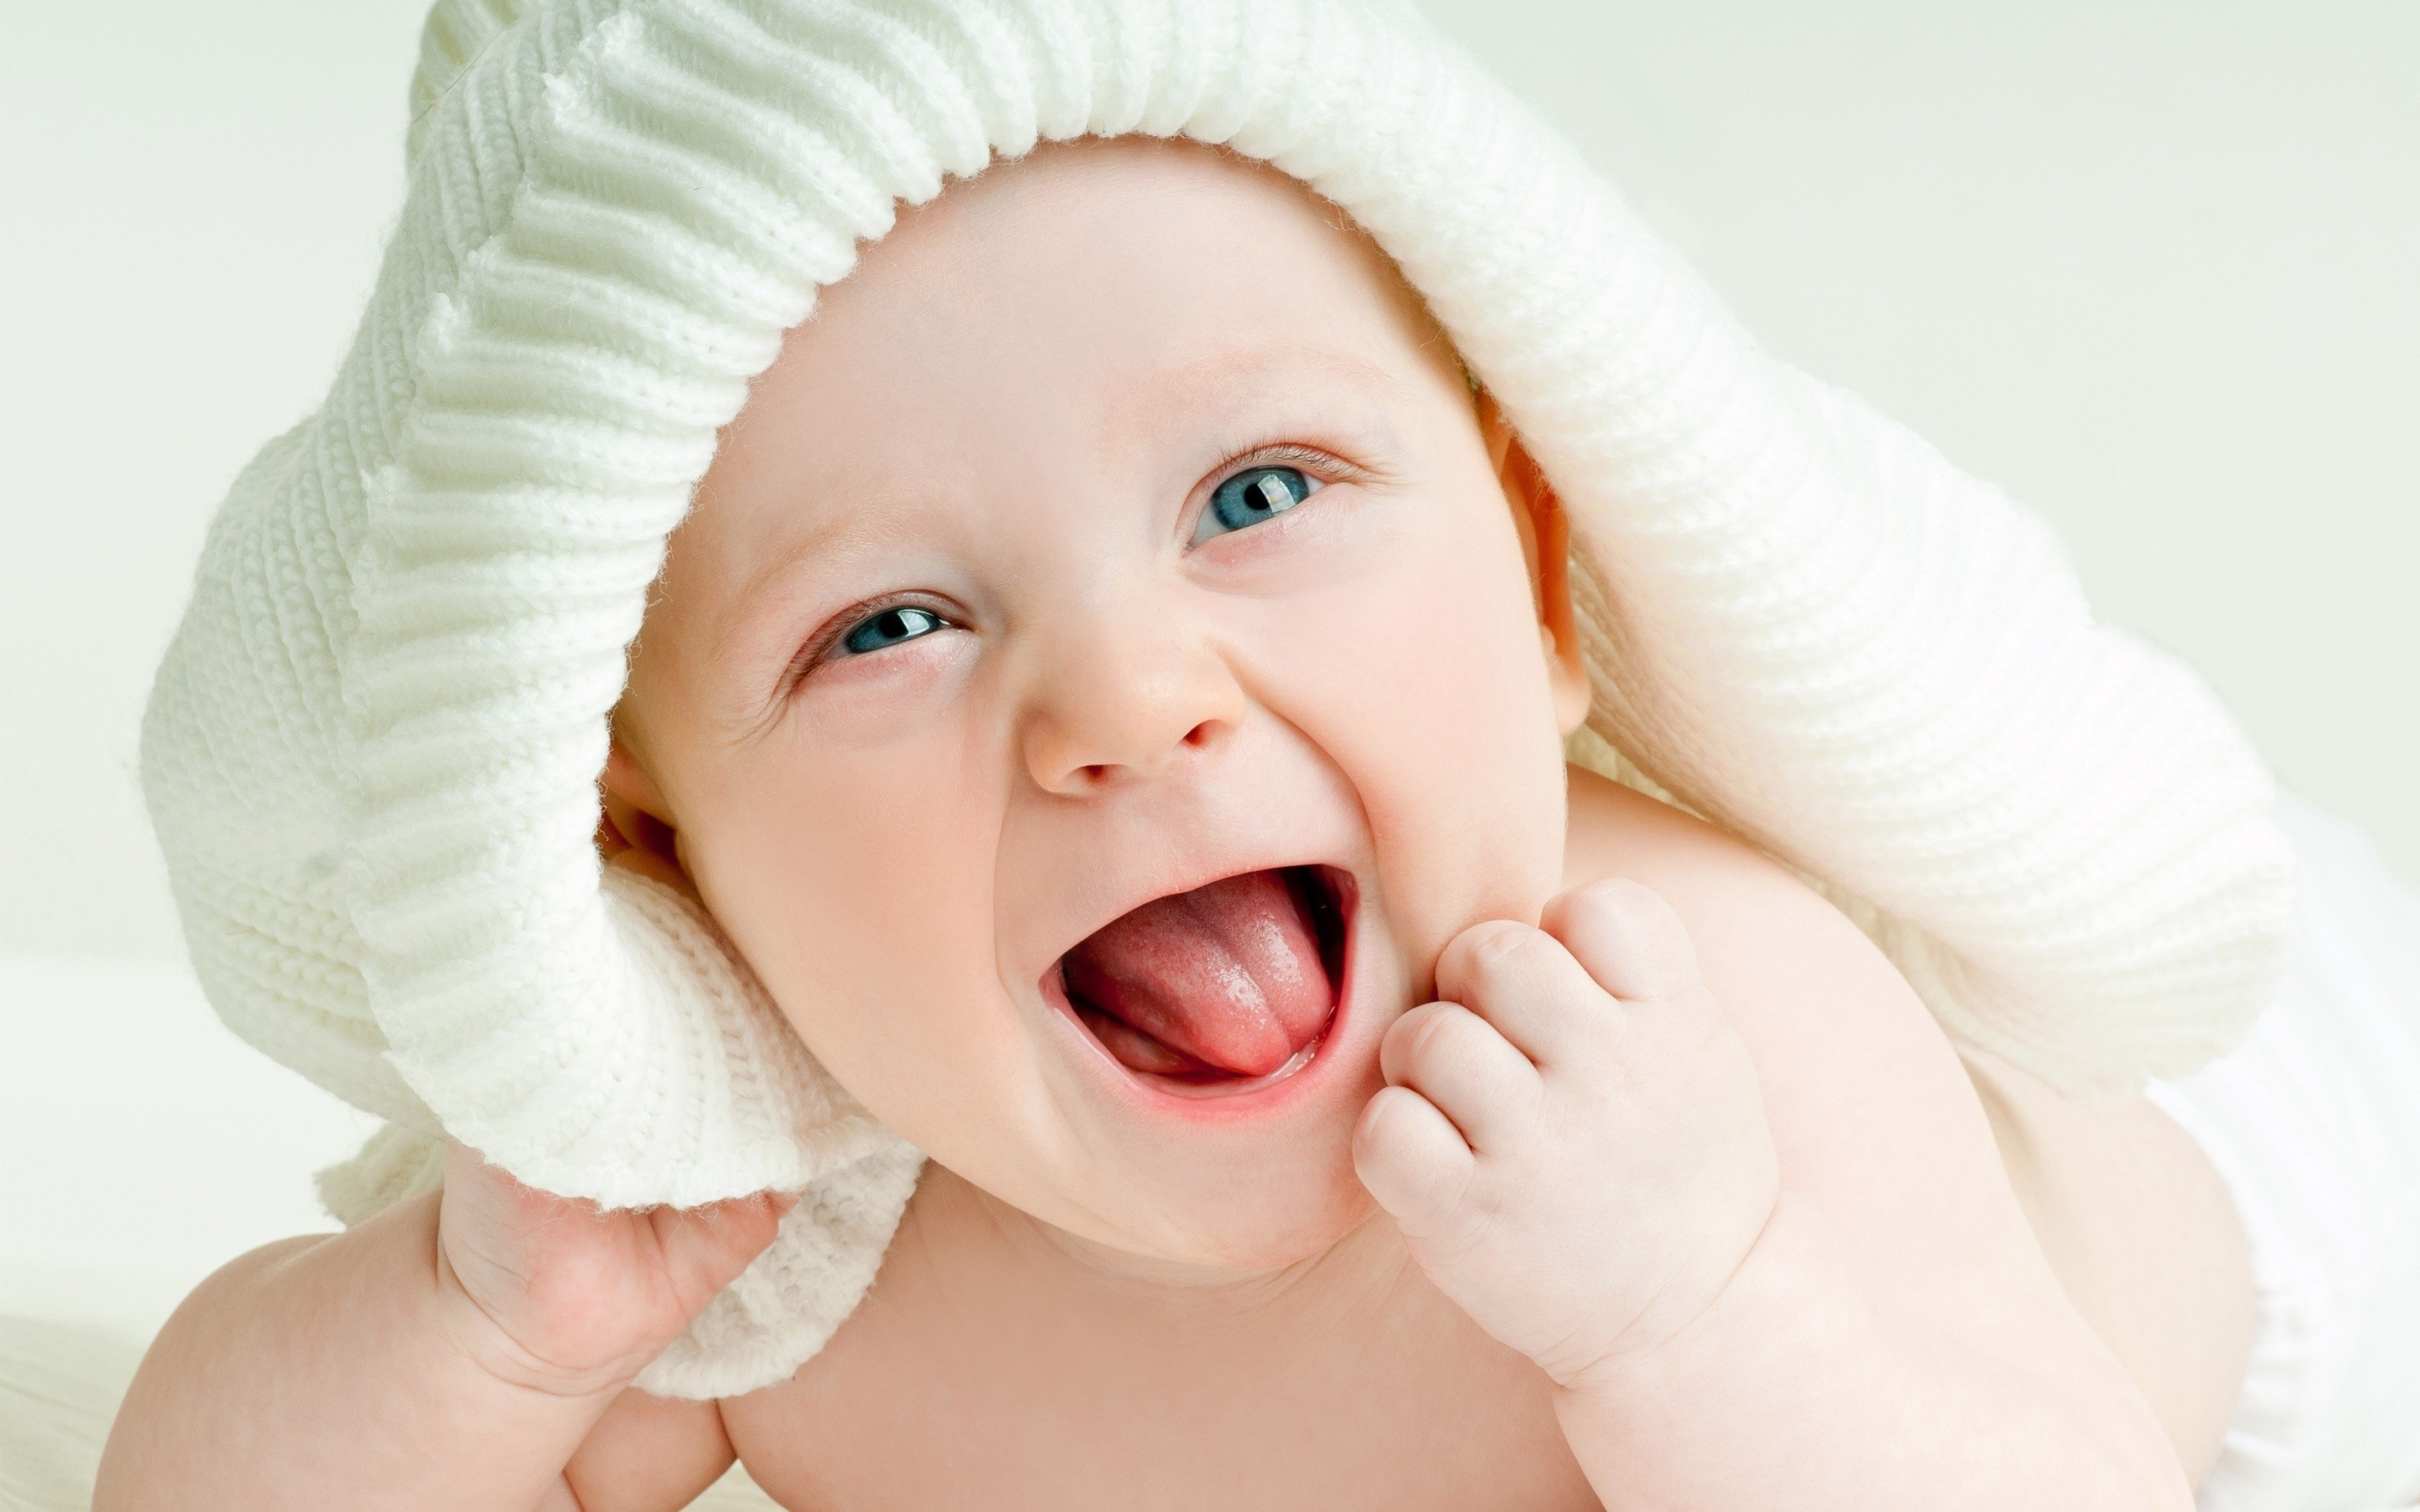 cute baby backgrounds (40+ images)